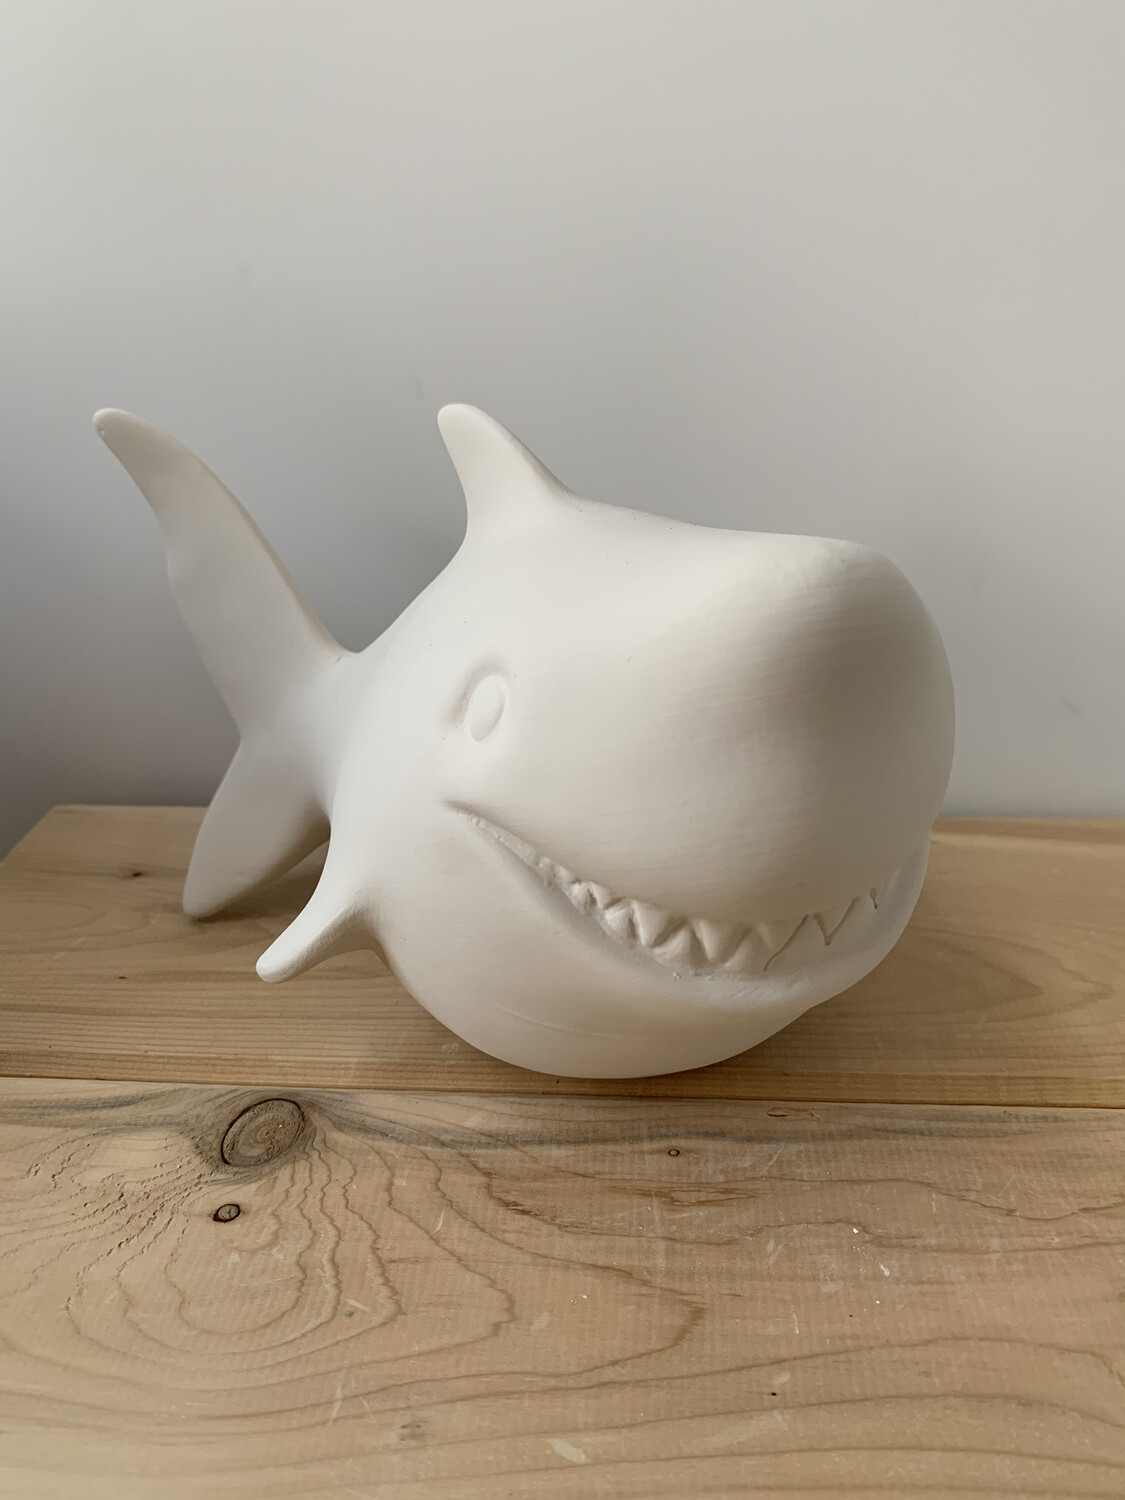 NO FIRE Paint Your Own Pottery Kit -  Ceramic Shark Bank Acrylic Painting Kit